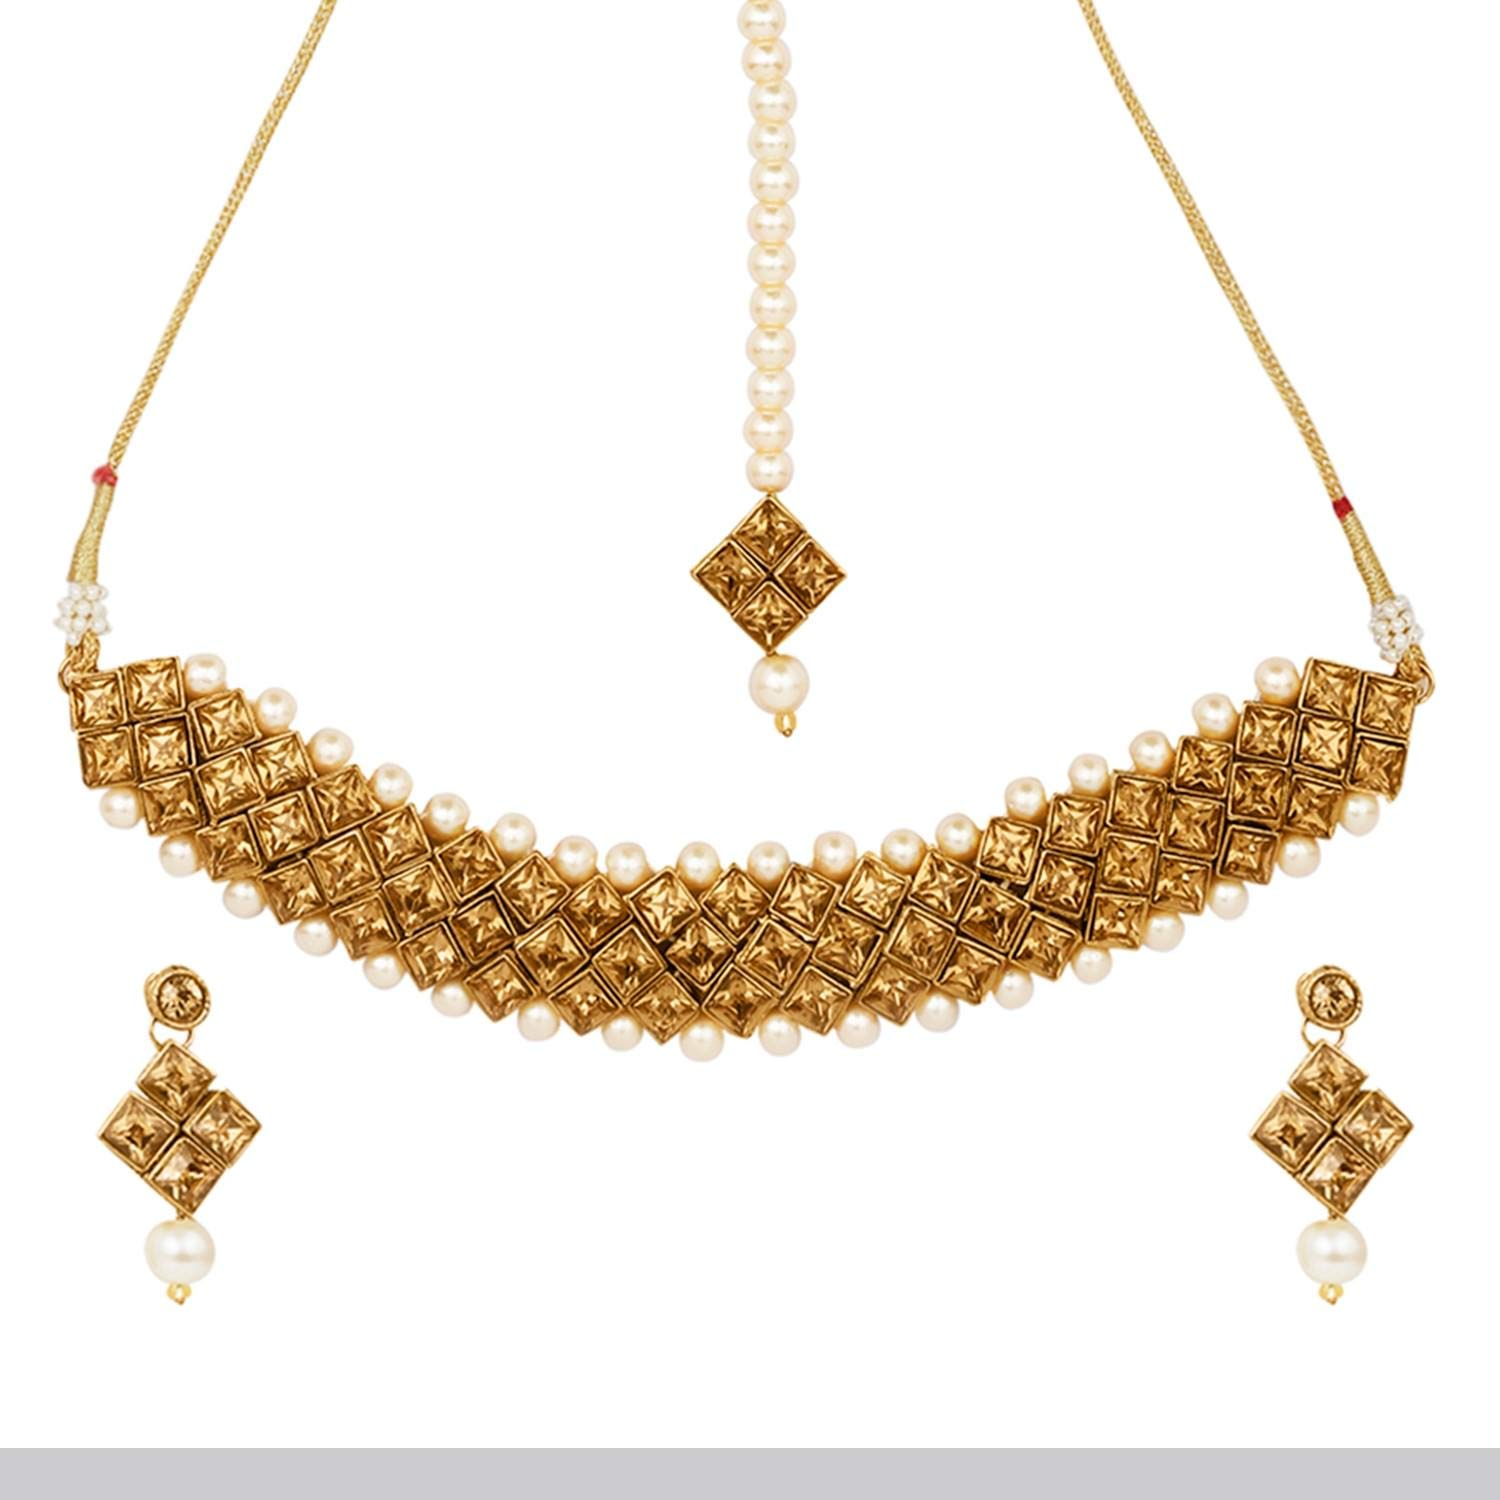 Efulgenz Indian Bollywood Traditional 14 K Gold Plated Kundan Crystal Pearl Wedding Bridal Choker Necklace Earrings Jewelry Set Jaipur Art Jewellery MNT548